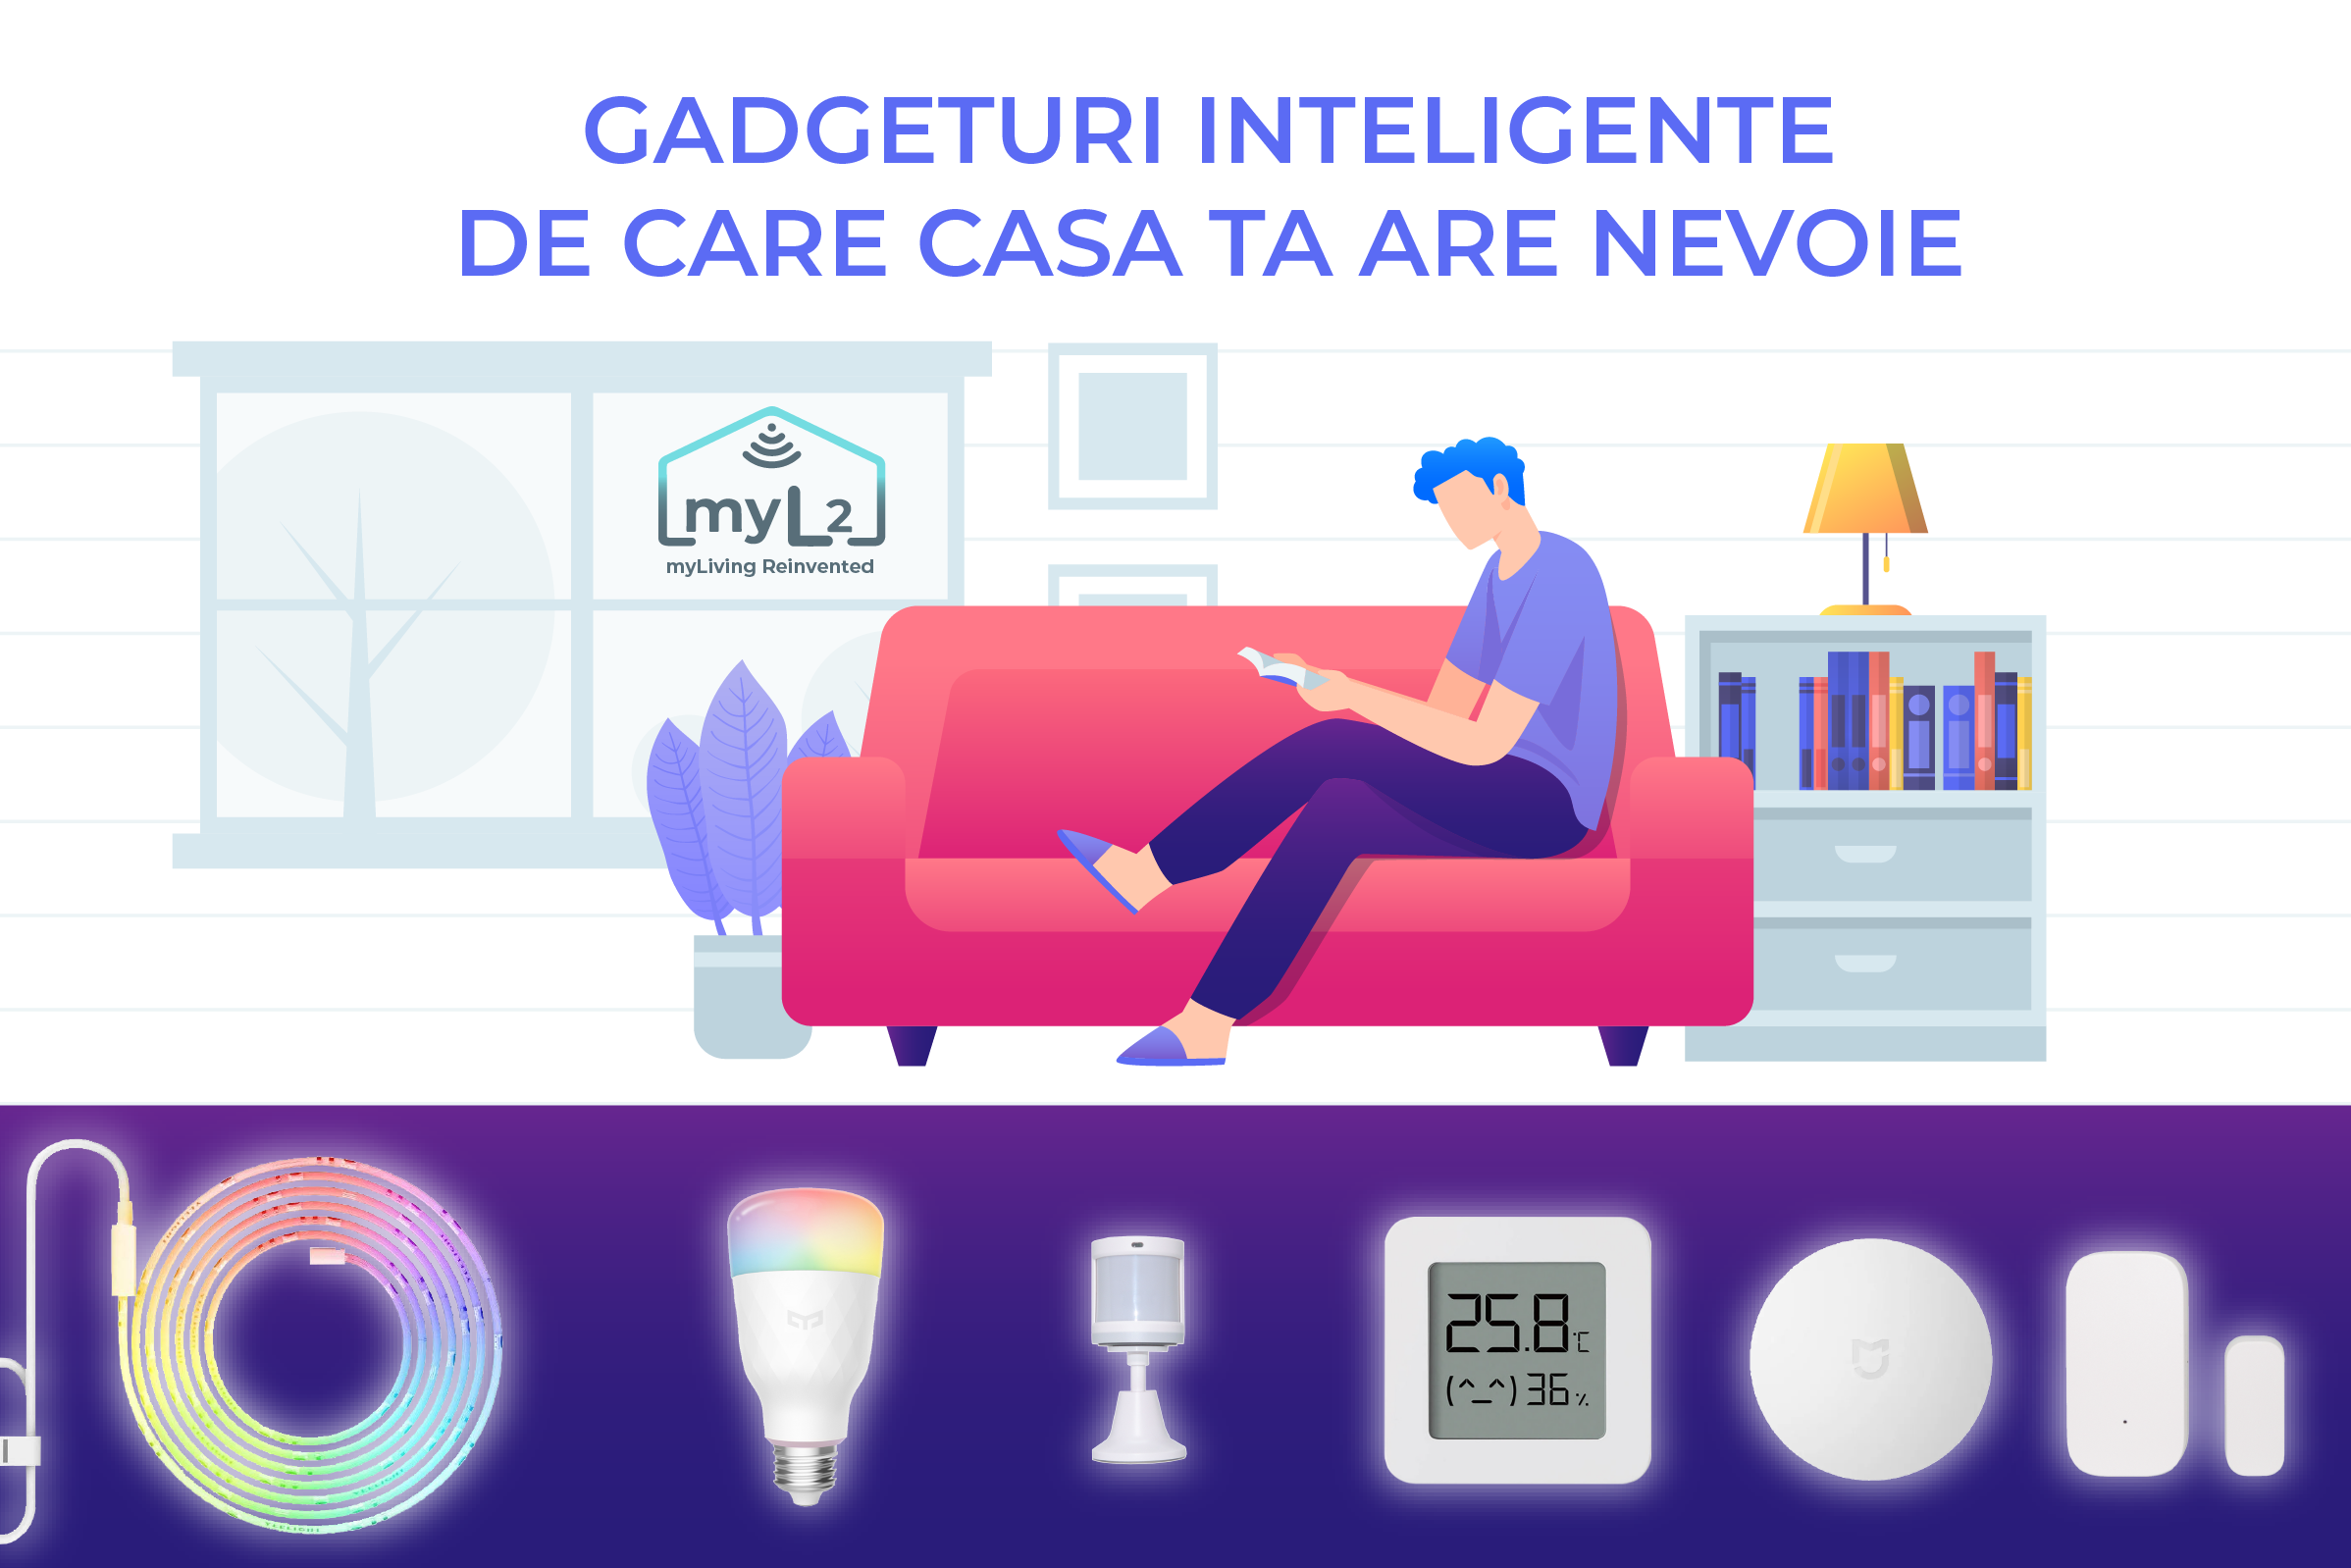 gadgeturi inteligente de care casa ta are nevoie